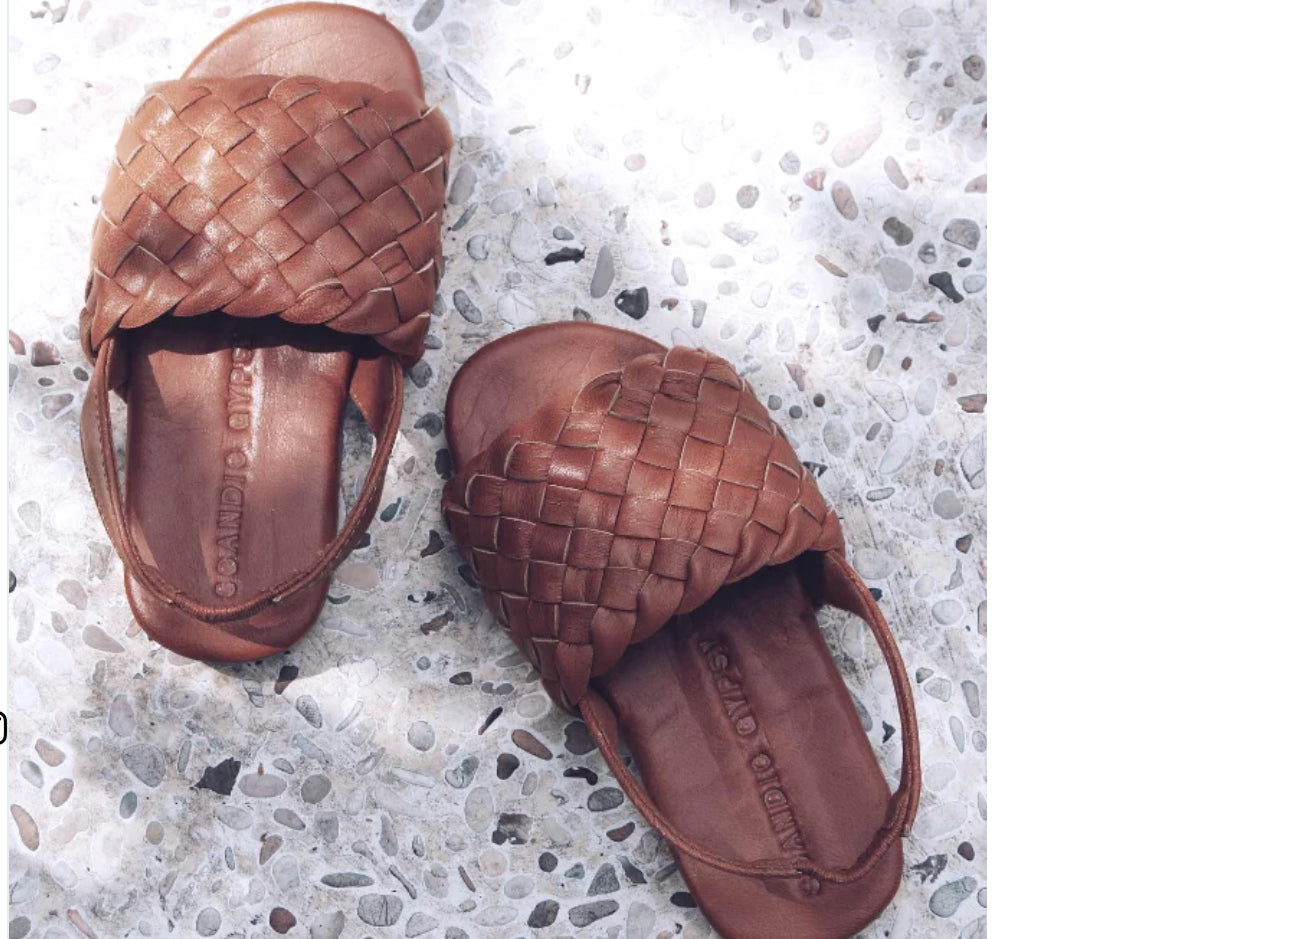 Little Gypsy Sandal - Summer Tan or Nudie